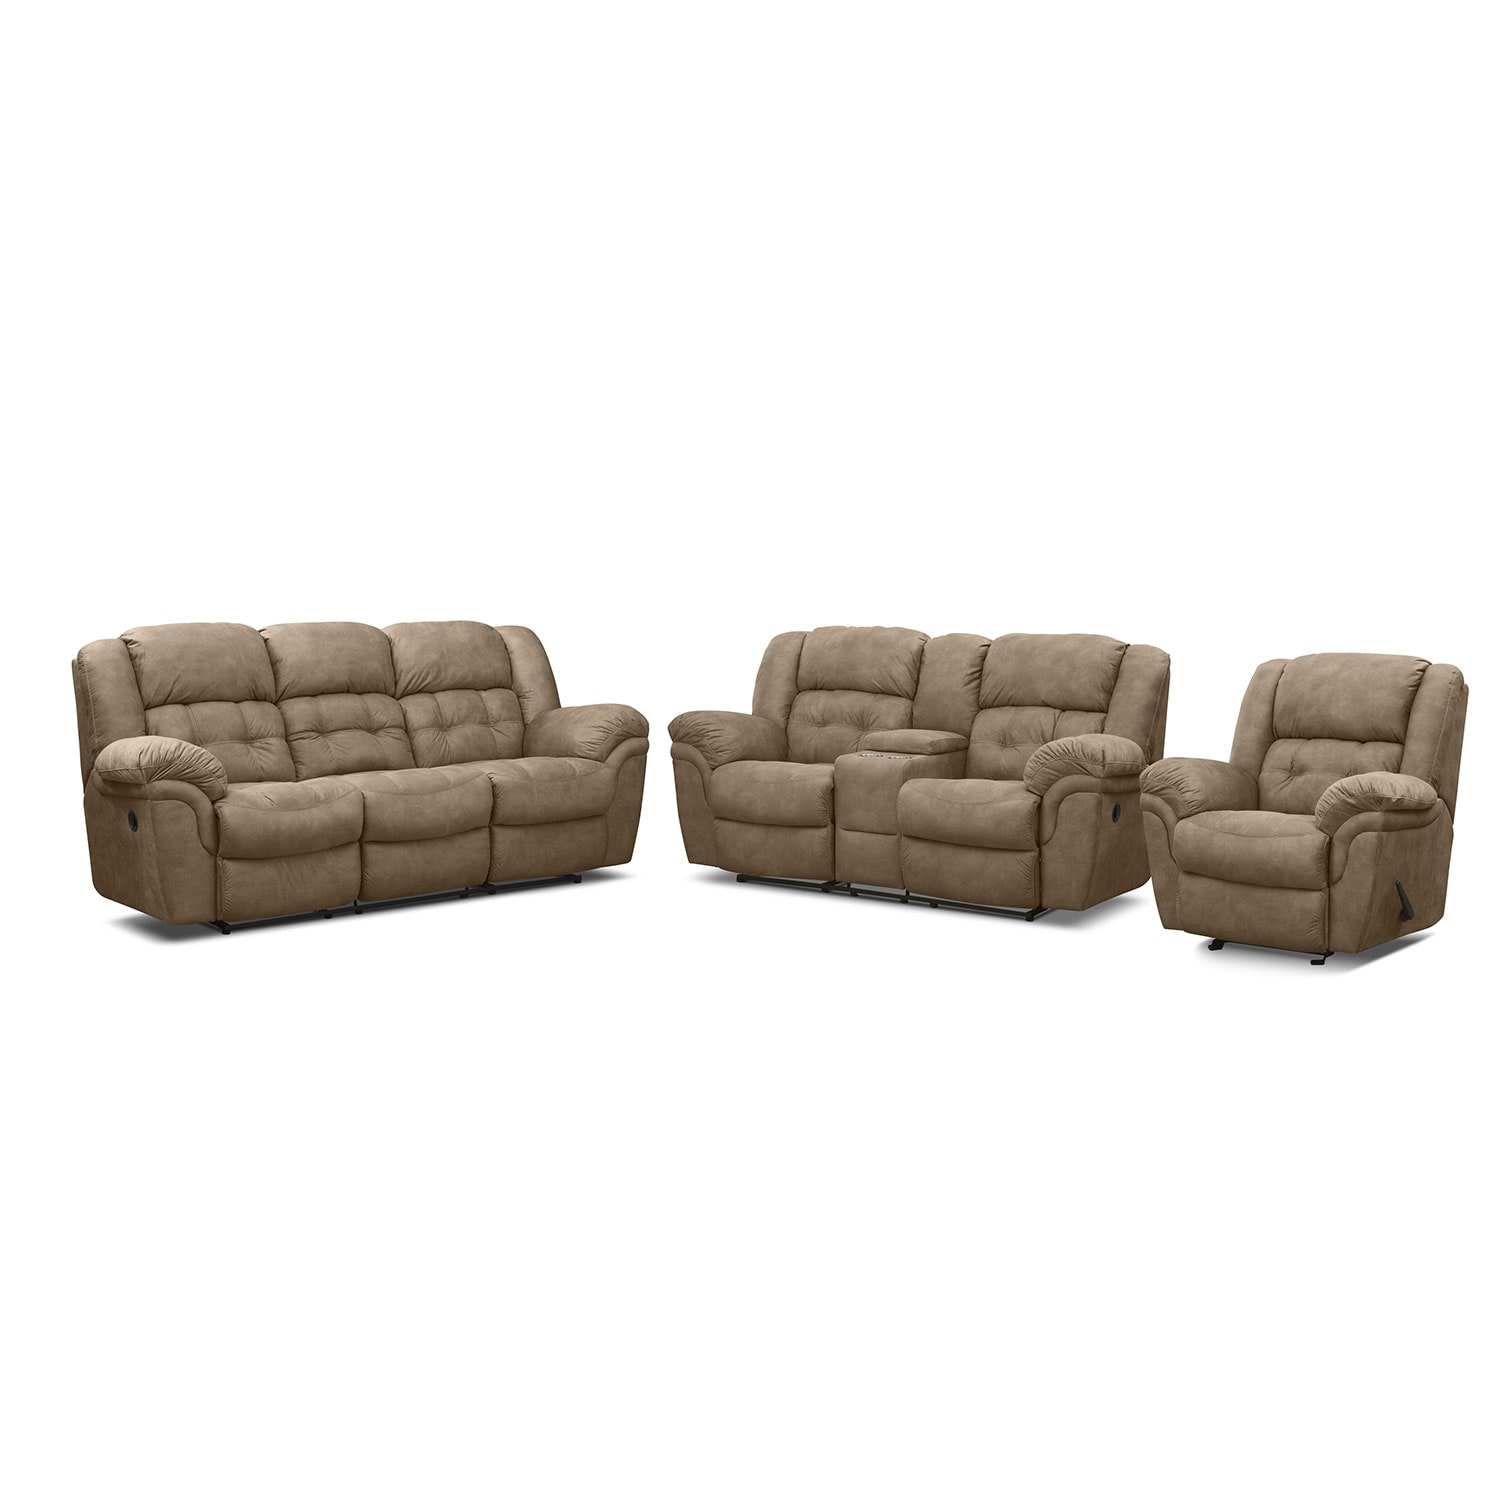 Living Room Furniture - Lancer Pecan 3 Pc. Reclining Living Room